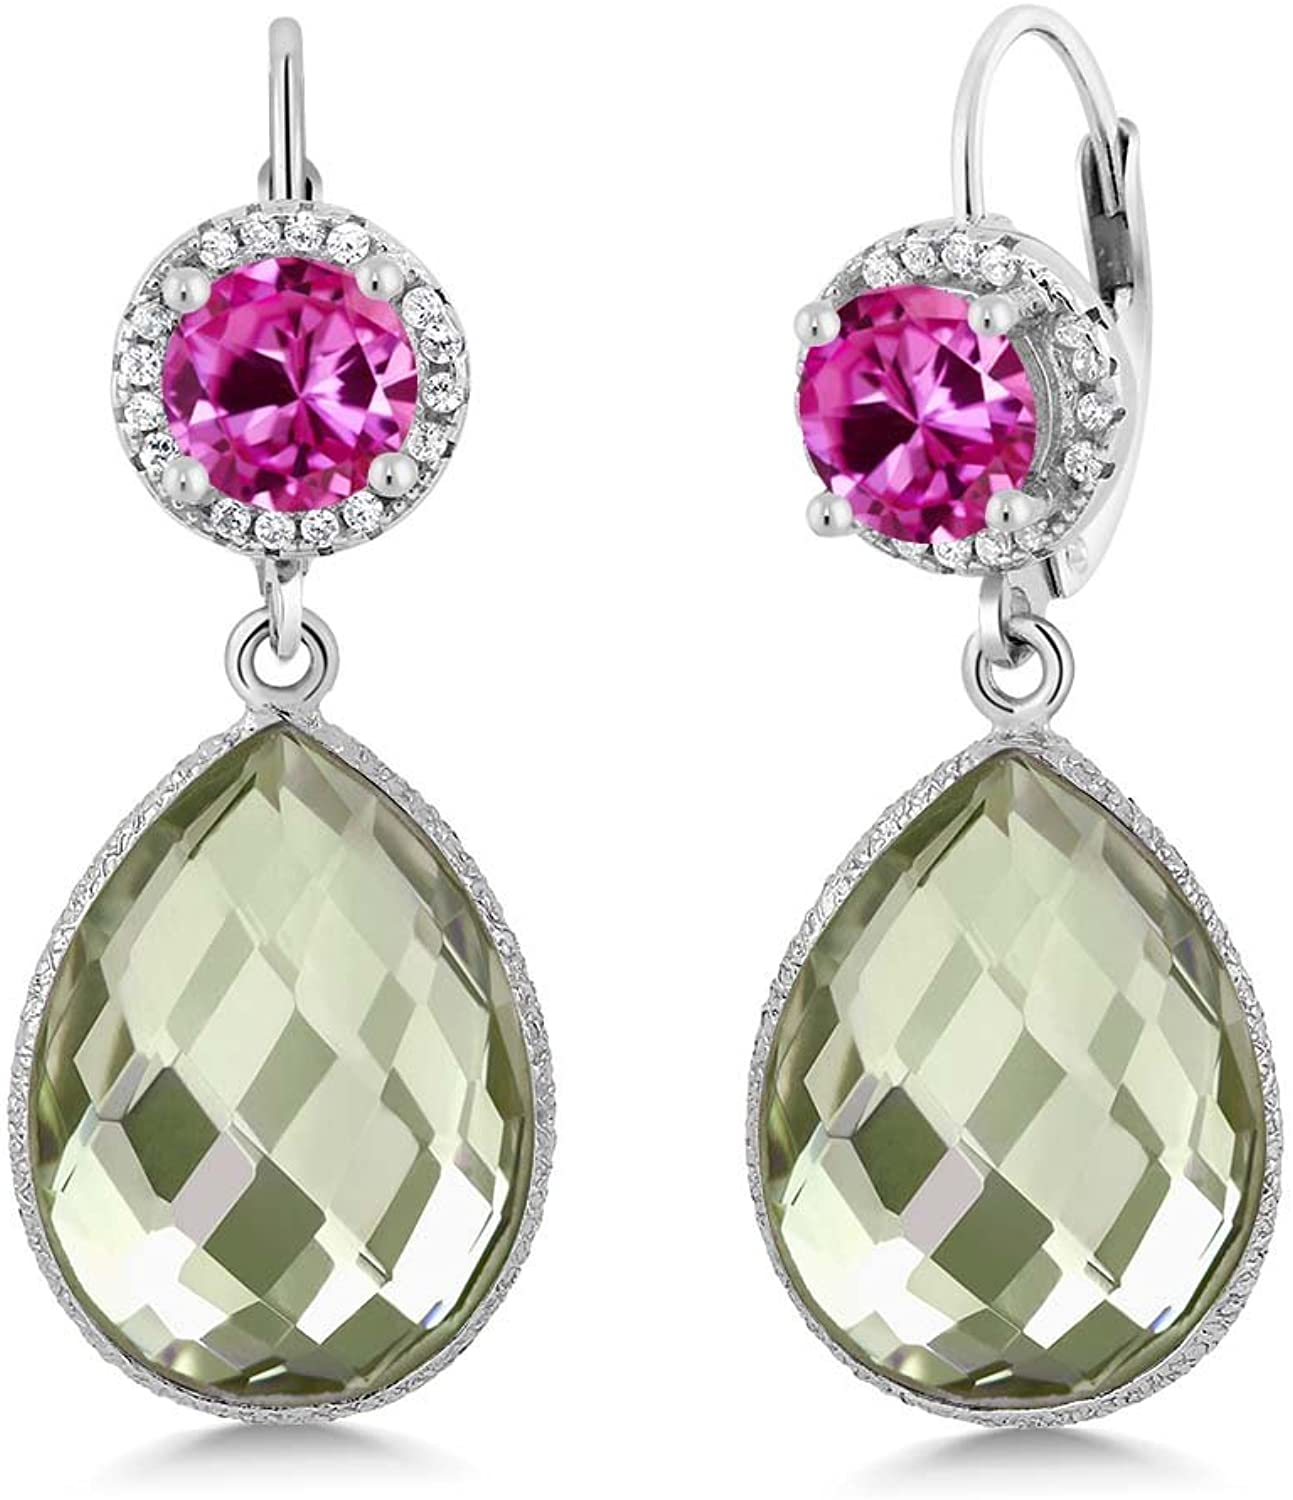 2.00 Ct Round Pink Created Sapphire Pear Amethyst 925 Sterling Silver Earrings